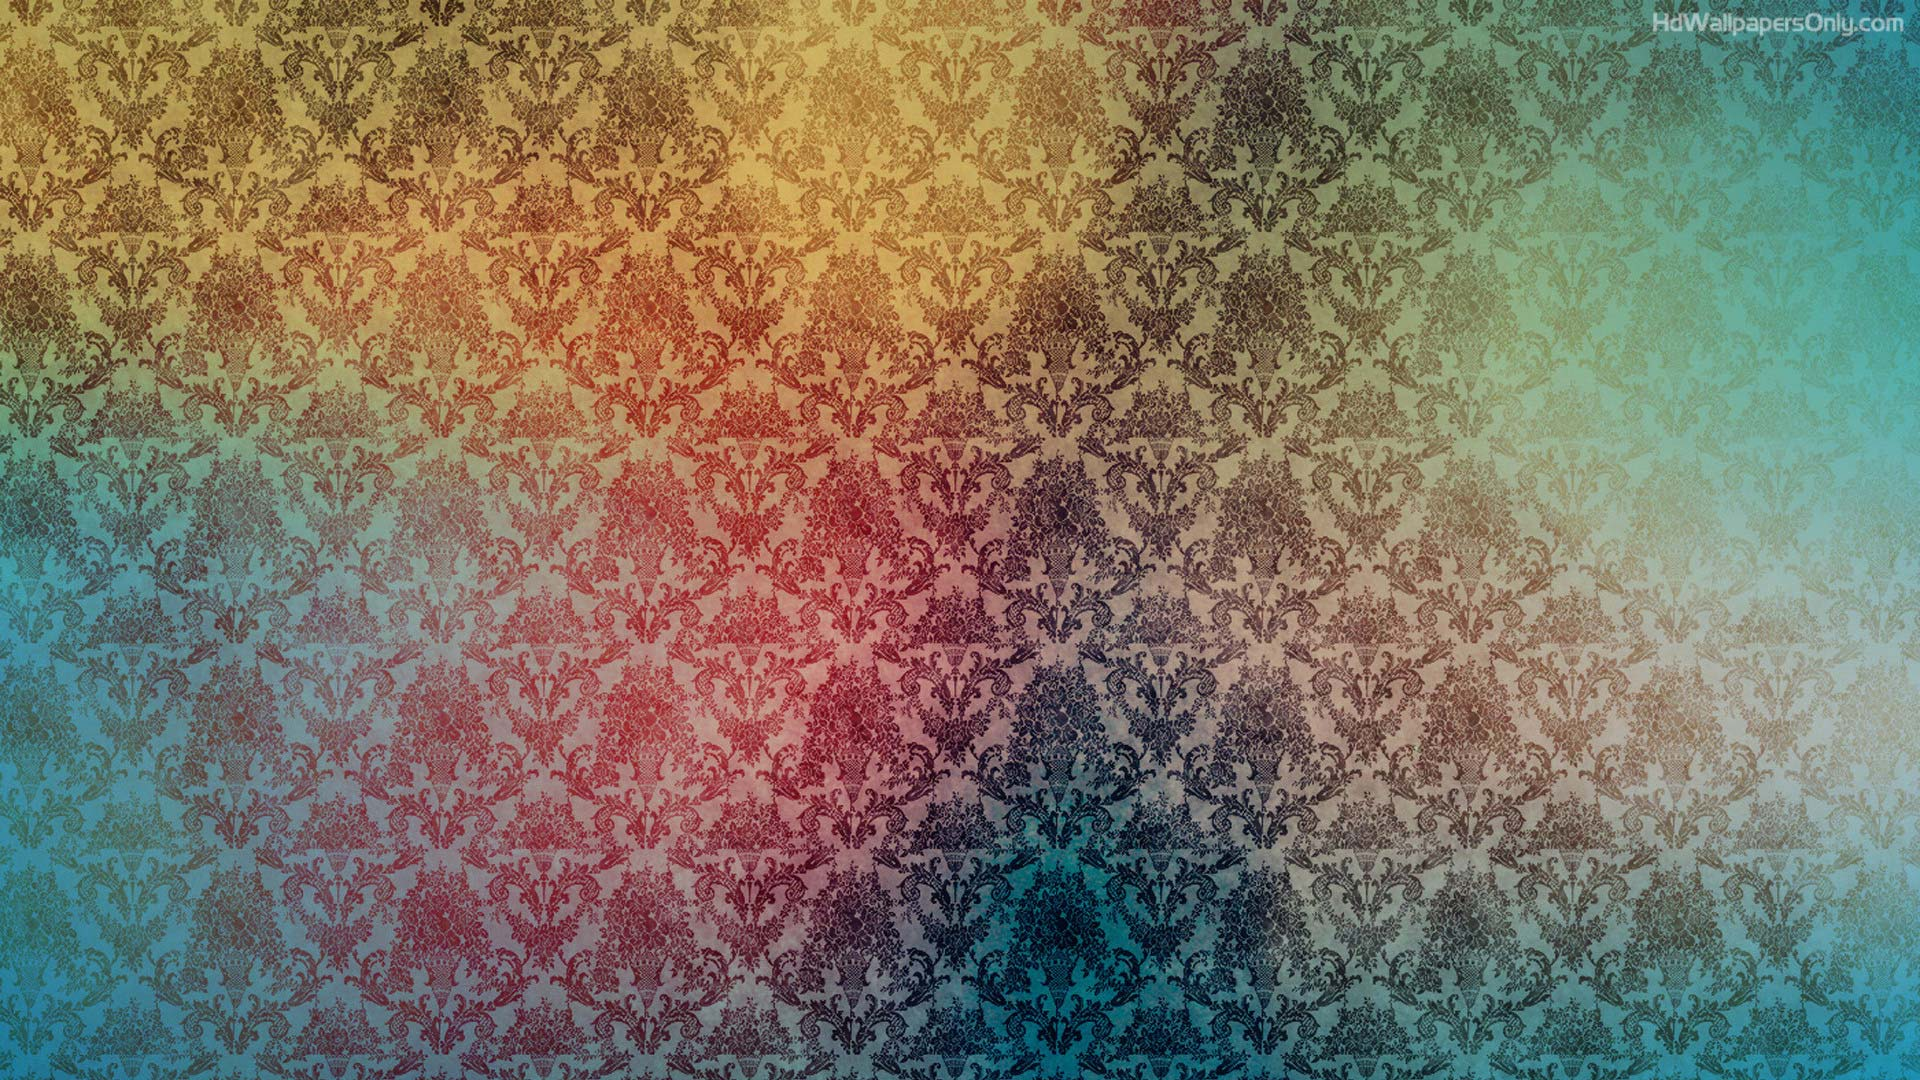 Vintage hd backgrounds wallpaper cave for Vintage wallpaper